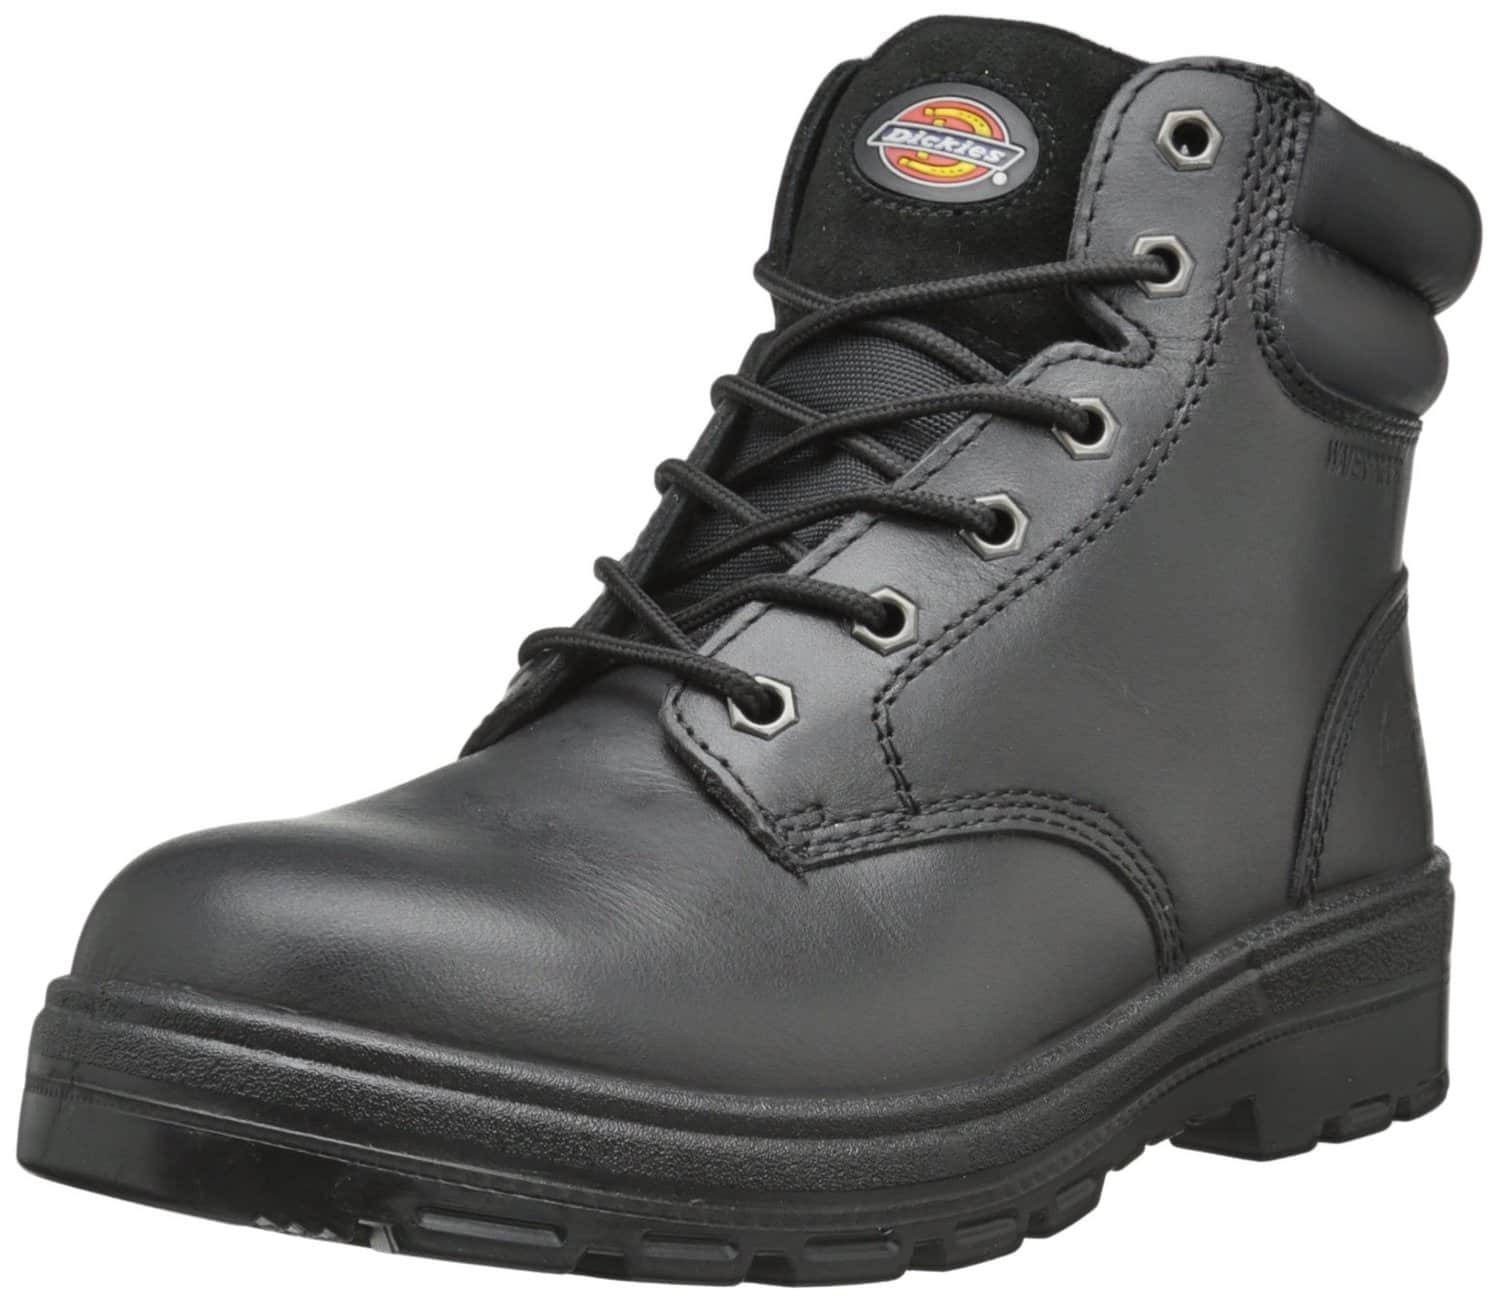 Dickies Men's Challenger Leather Waterproof Work Boots (Black) $19.86 Shipped w/ Redcard or $25+ Order Target.com